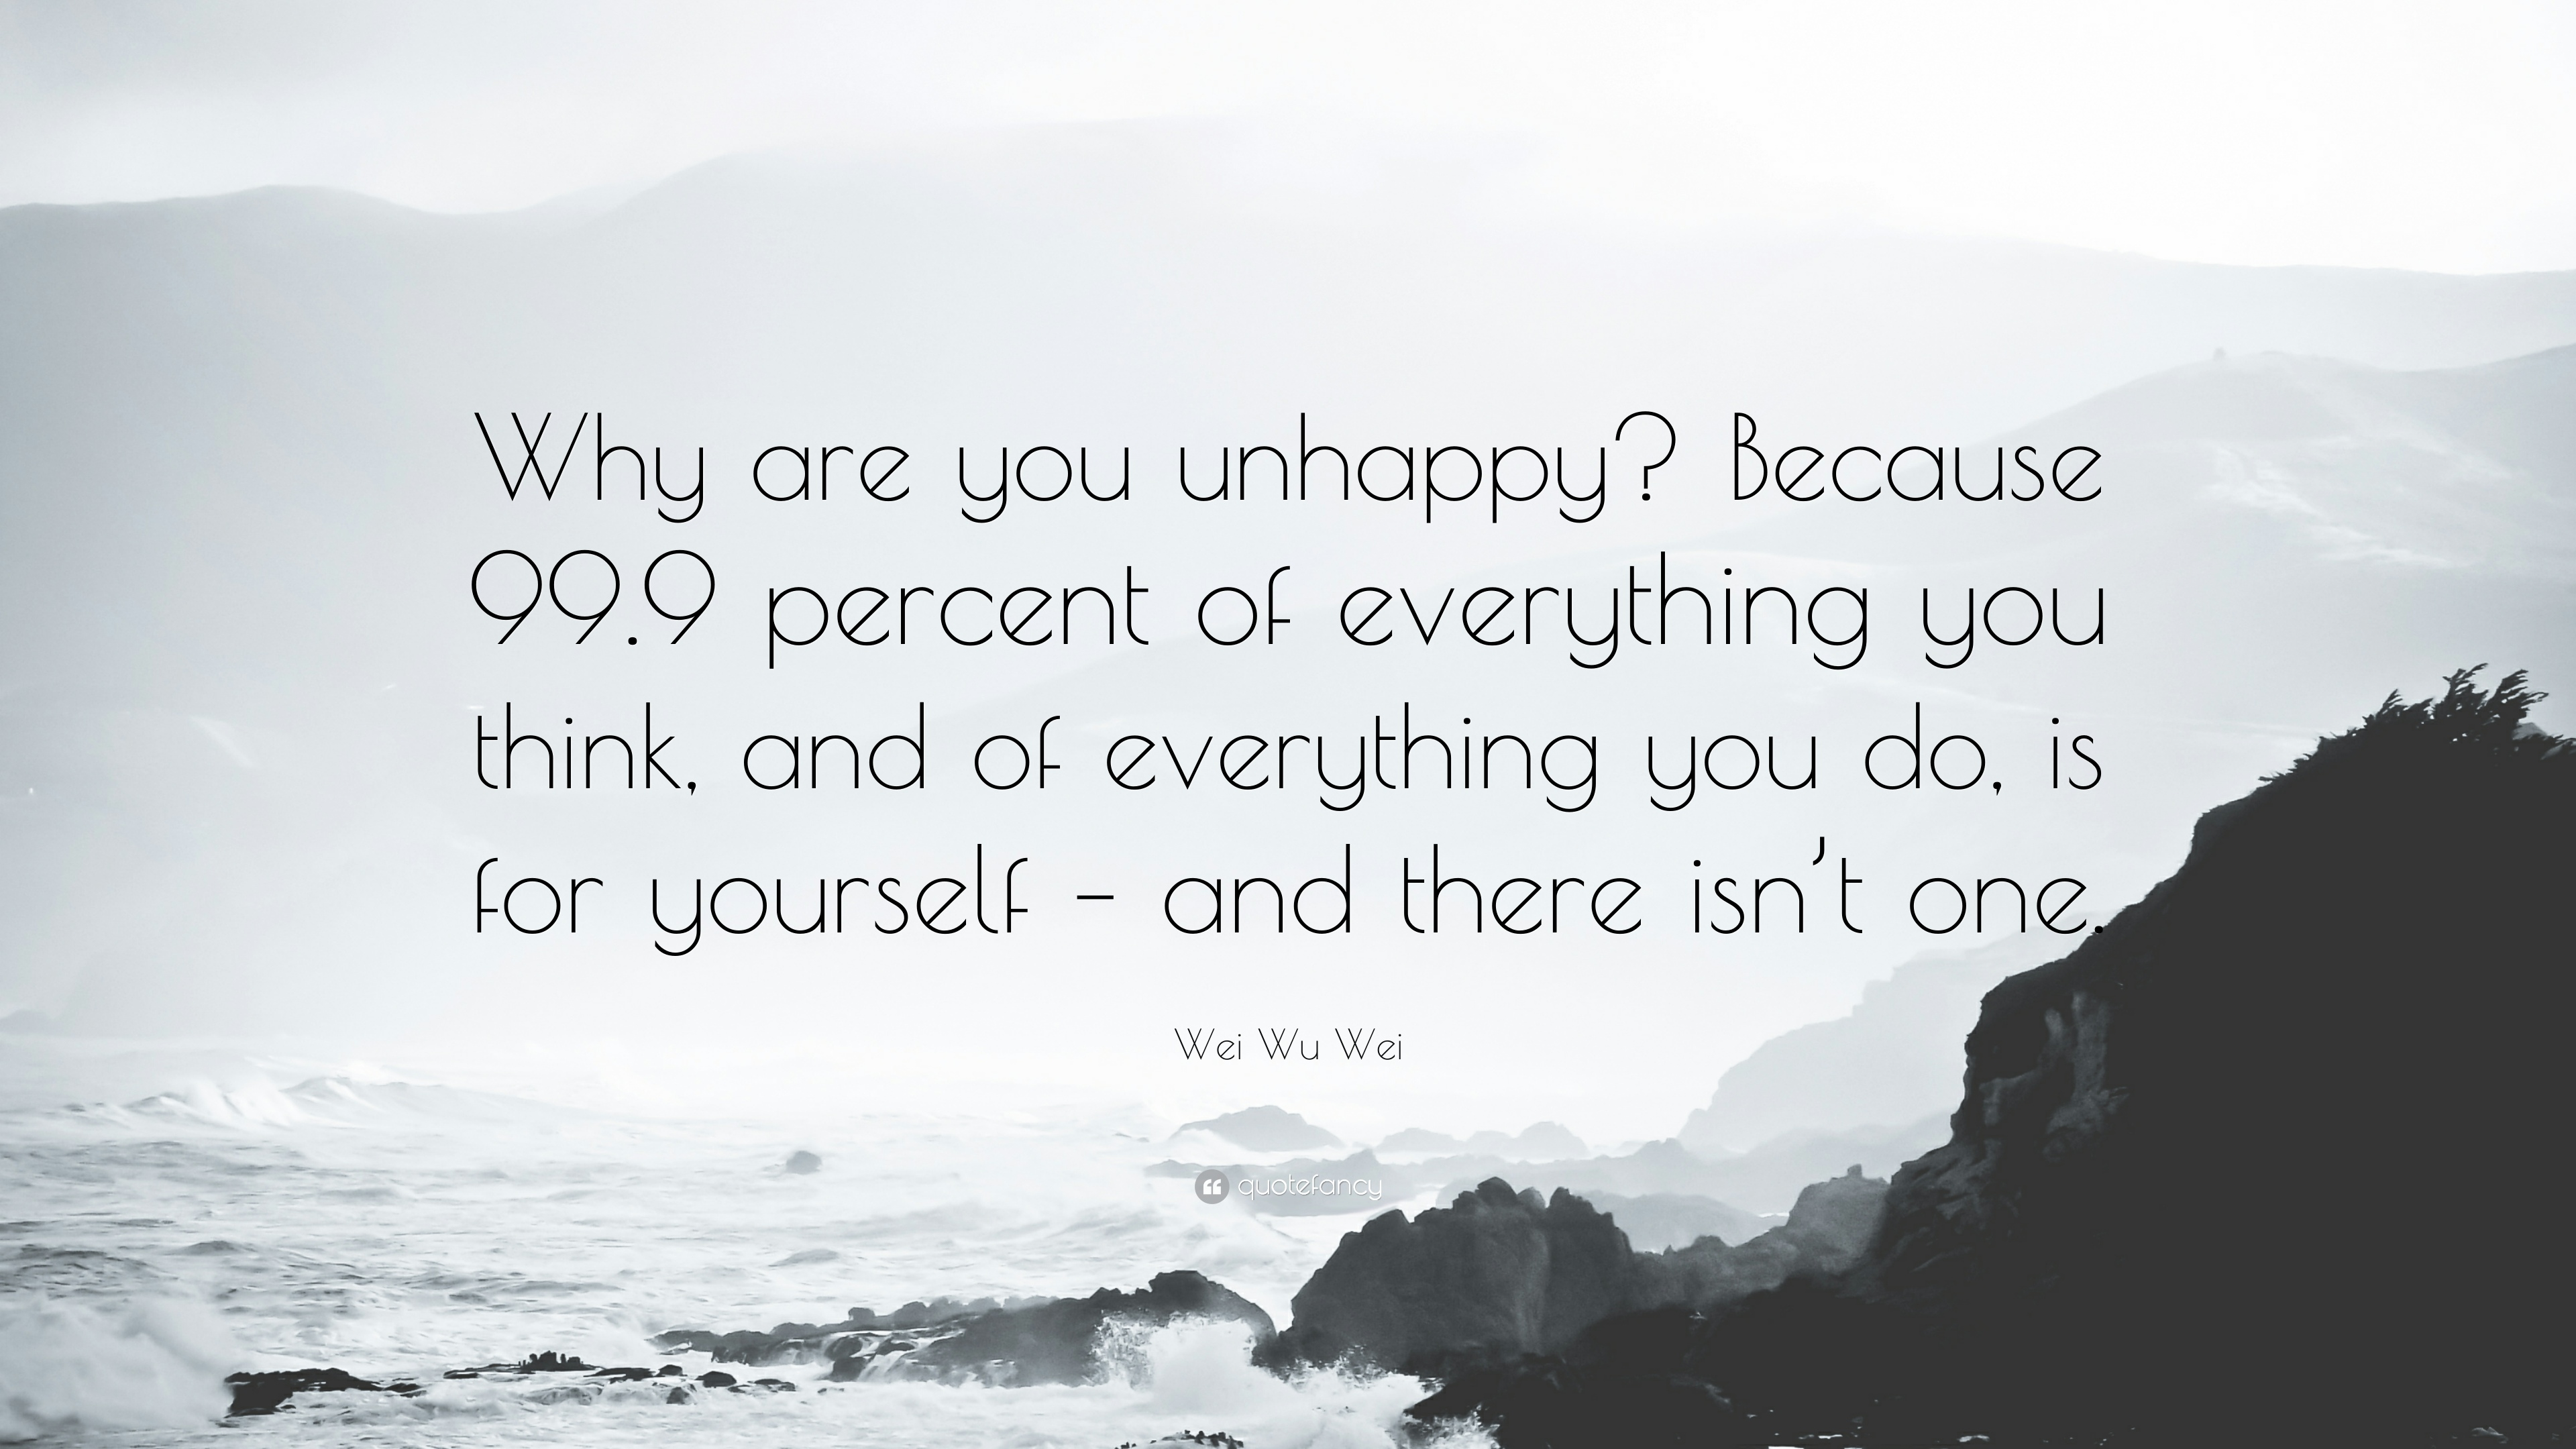 Wei Wu Wei Quote Why Are You Unhappy Because 999 Percent Of